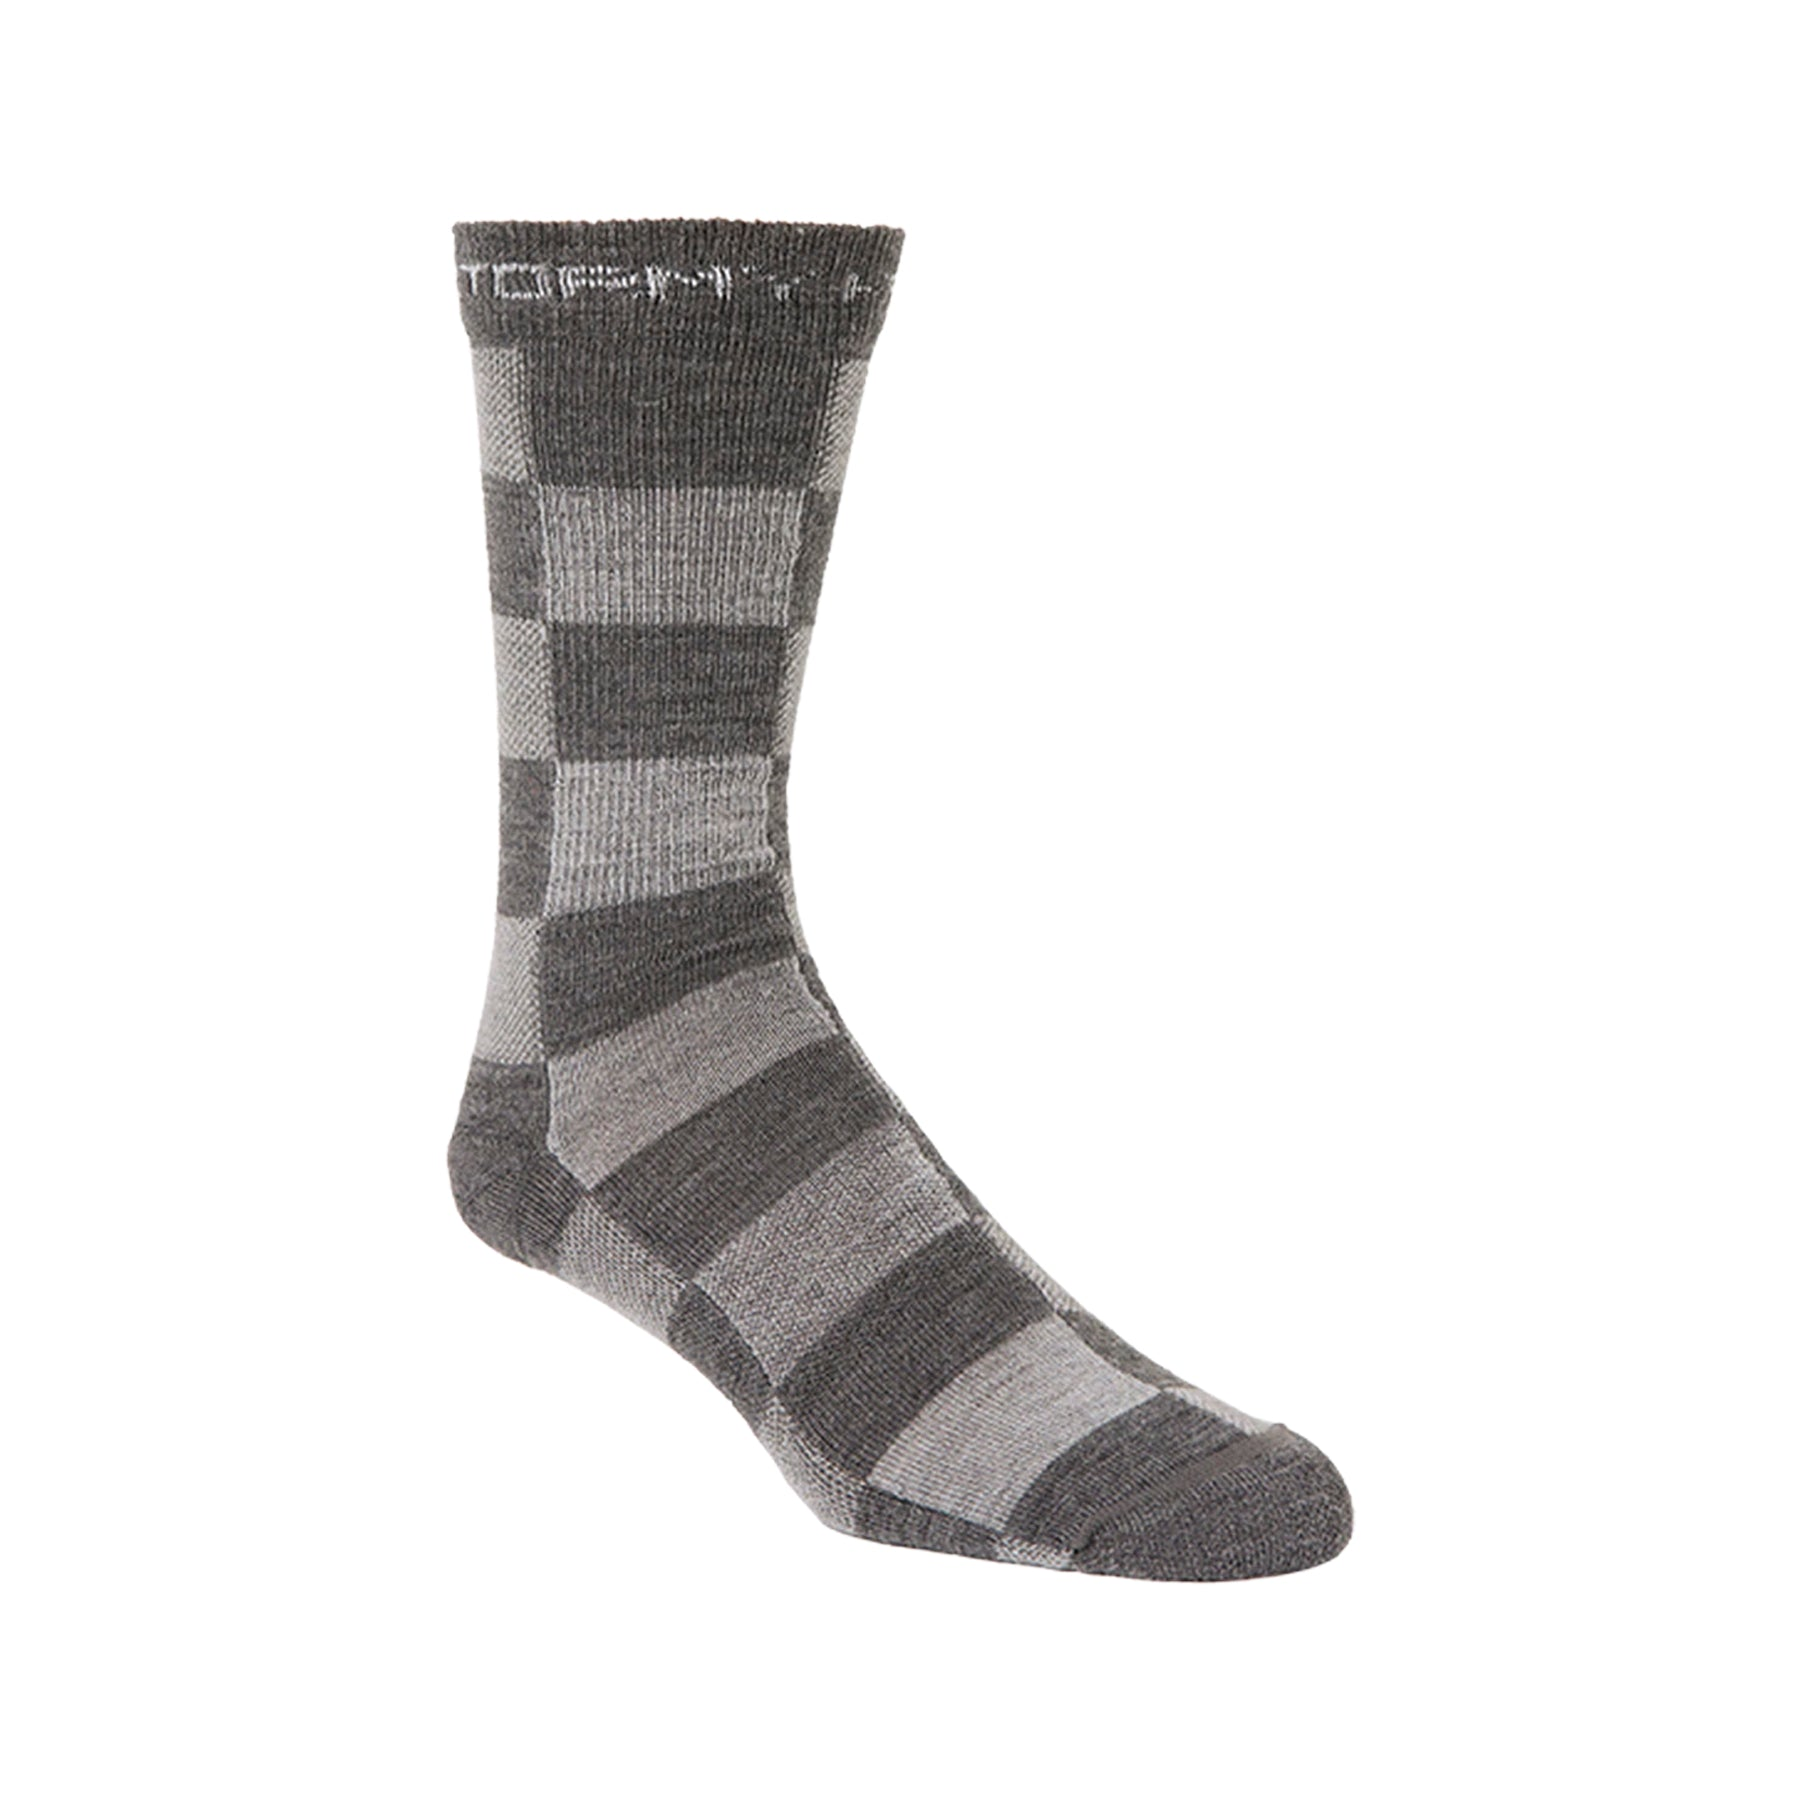 Stormy Kromer Gray Buffalo Check Lightweight Crew Socks